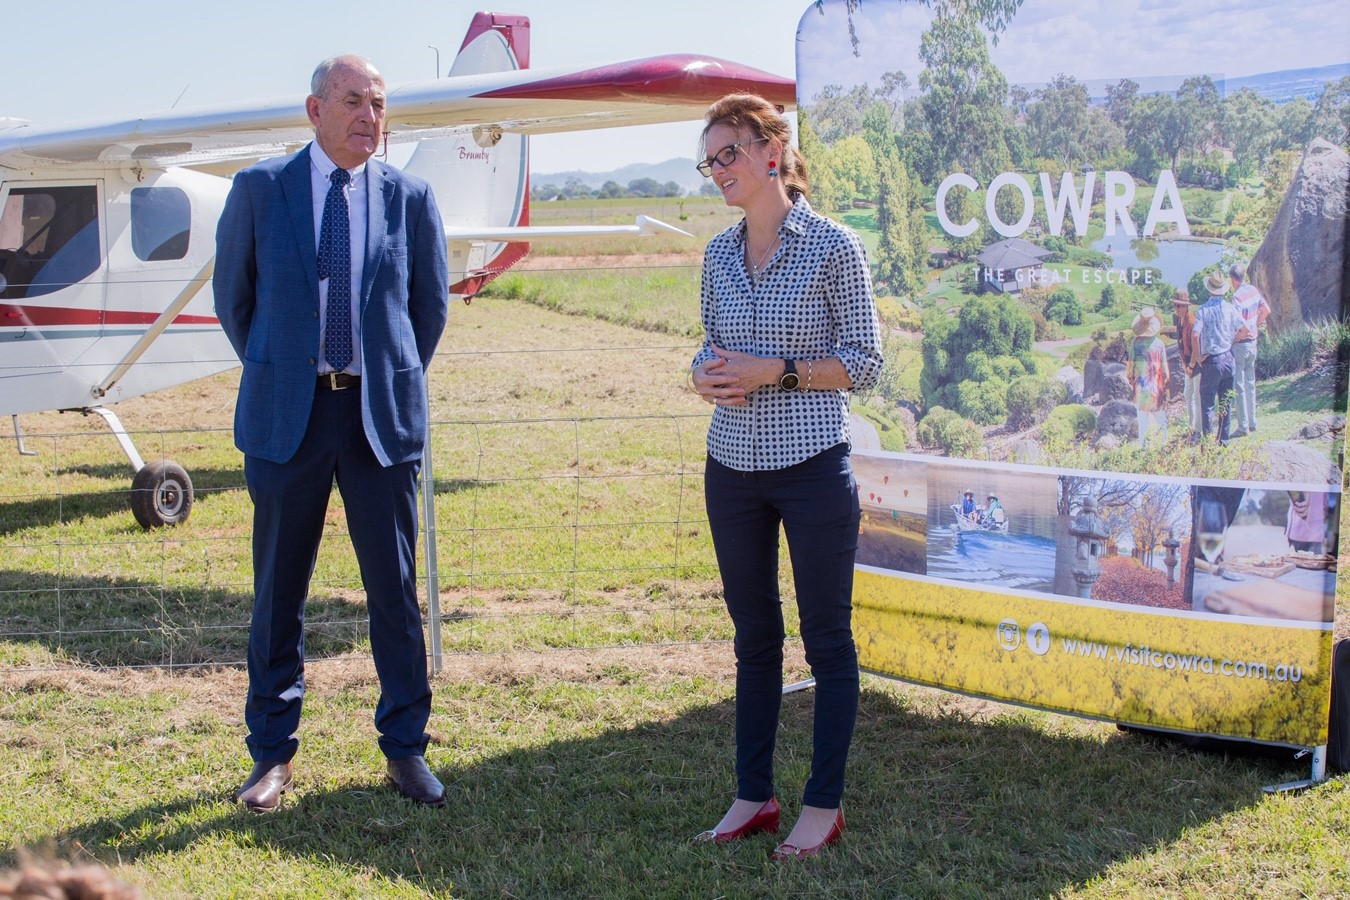 Mayor of Cowra Bill West and Steph Cooke stand on patchy grass in front of a Cowra banner and near a small red and white areoplane.